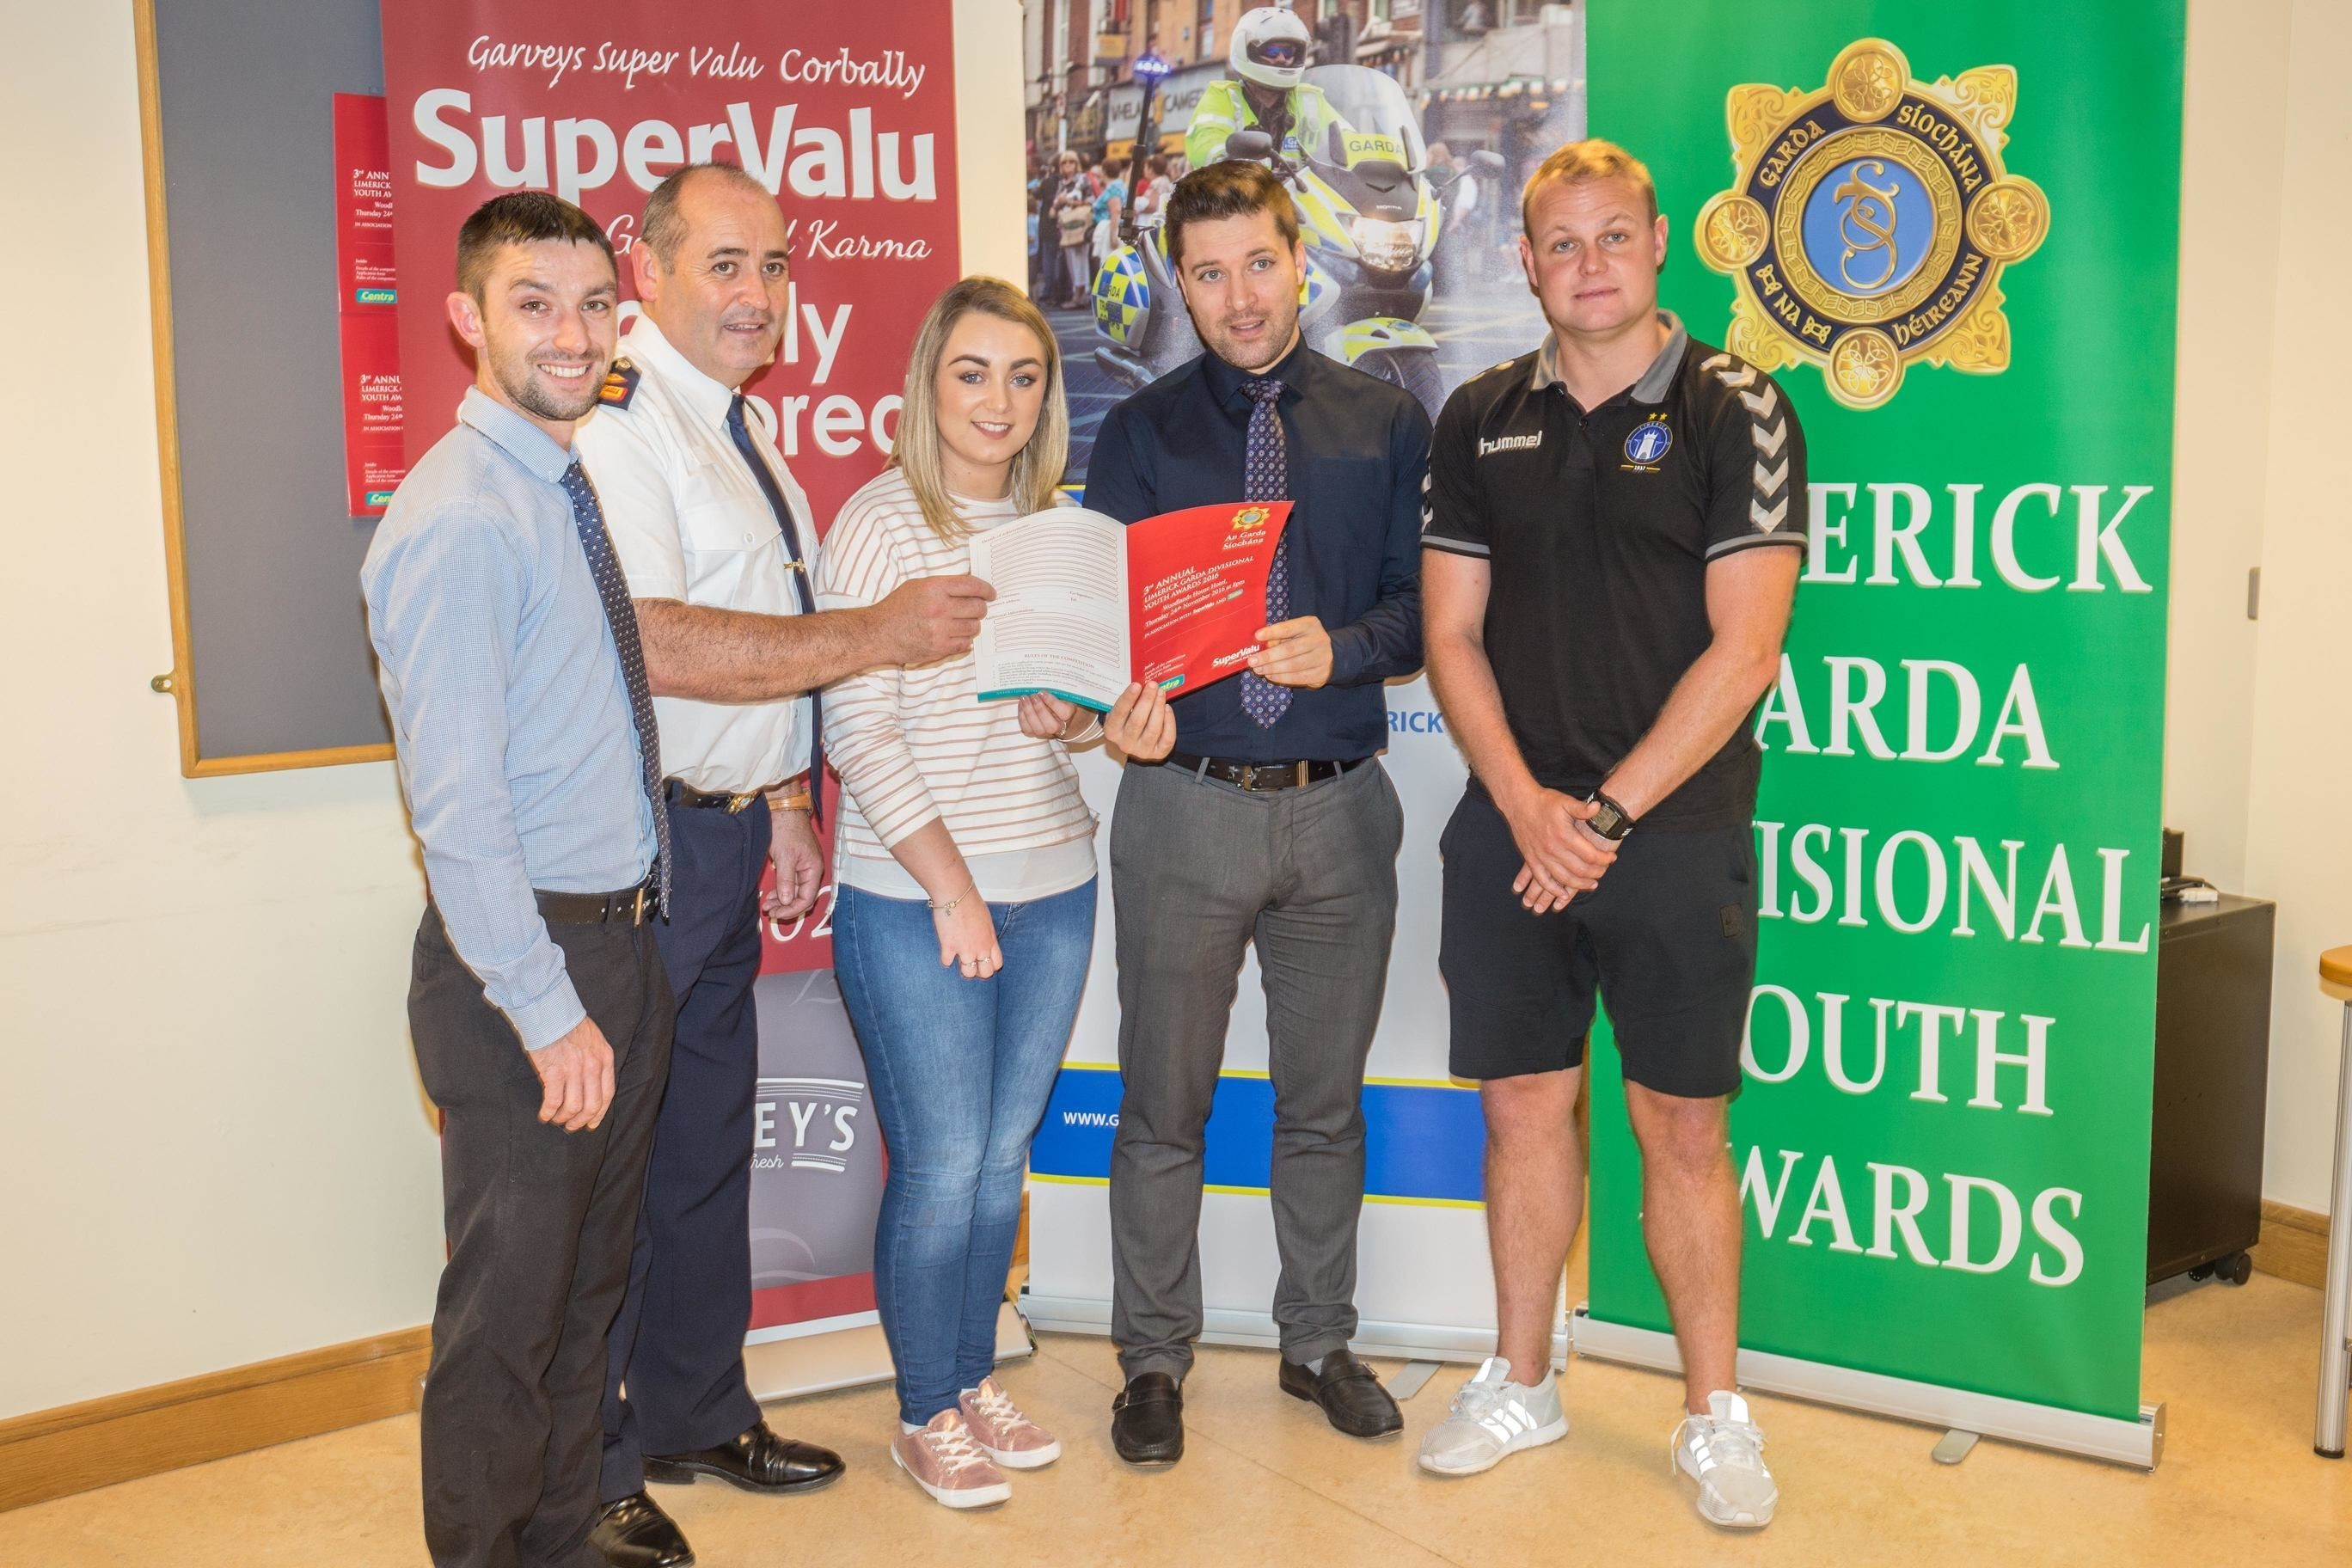 Limerick Garda Youth Awards